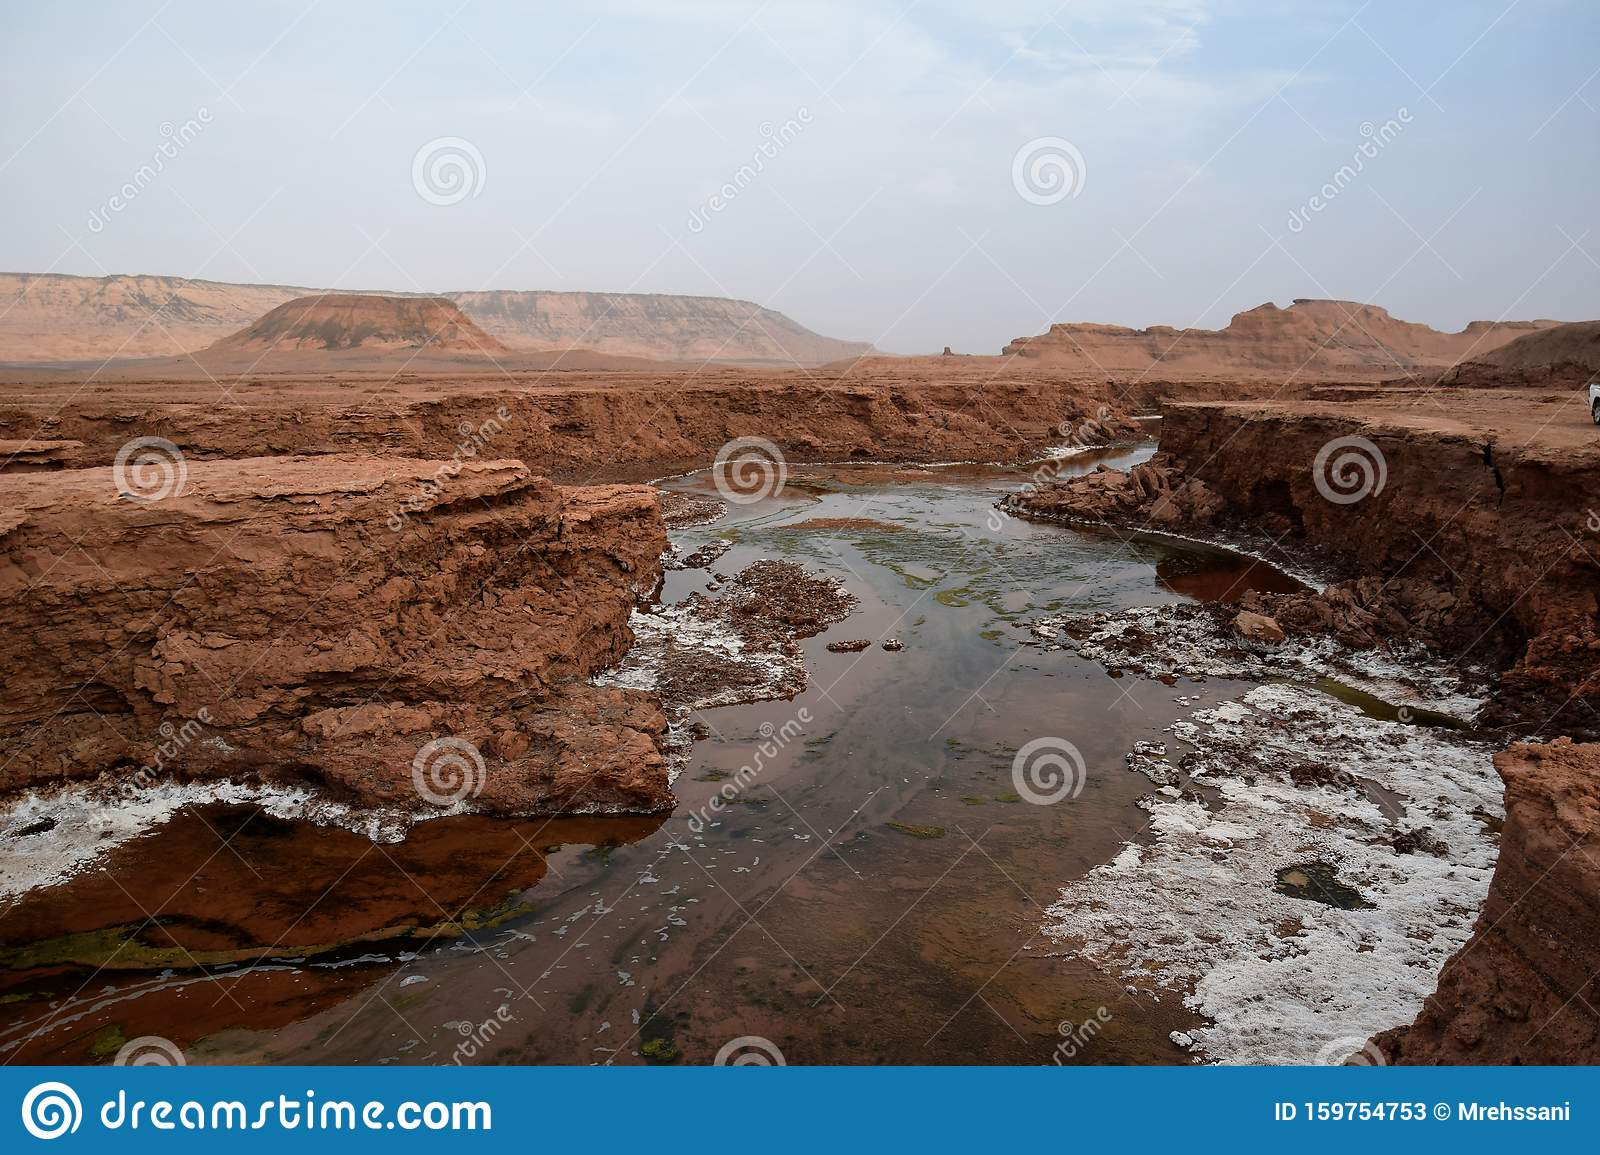 Shur River In Lut Desert Of Iran Stock Image Image Of Iran Settling 159754753